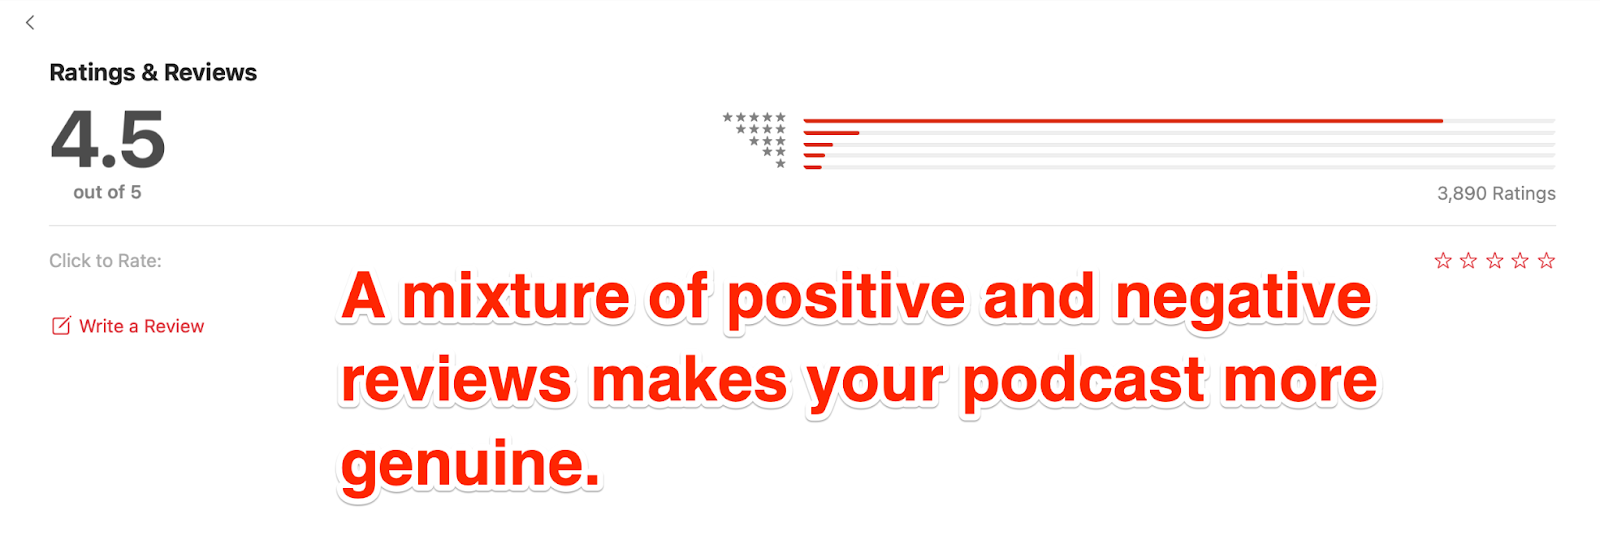 Mixture of good and bad podcast reviews